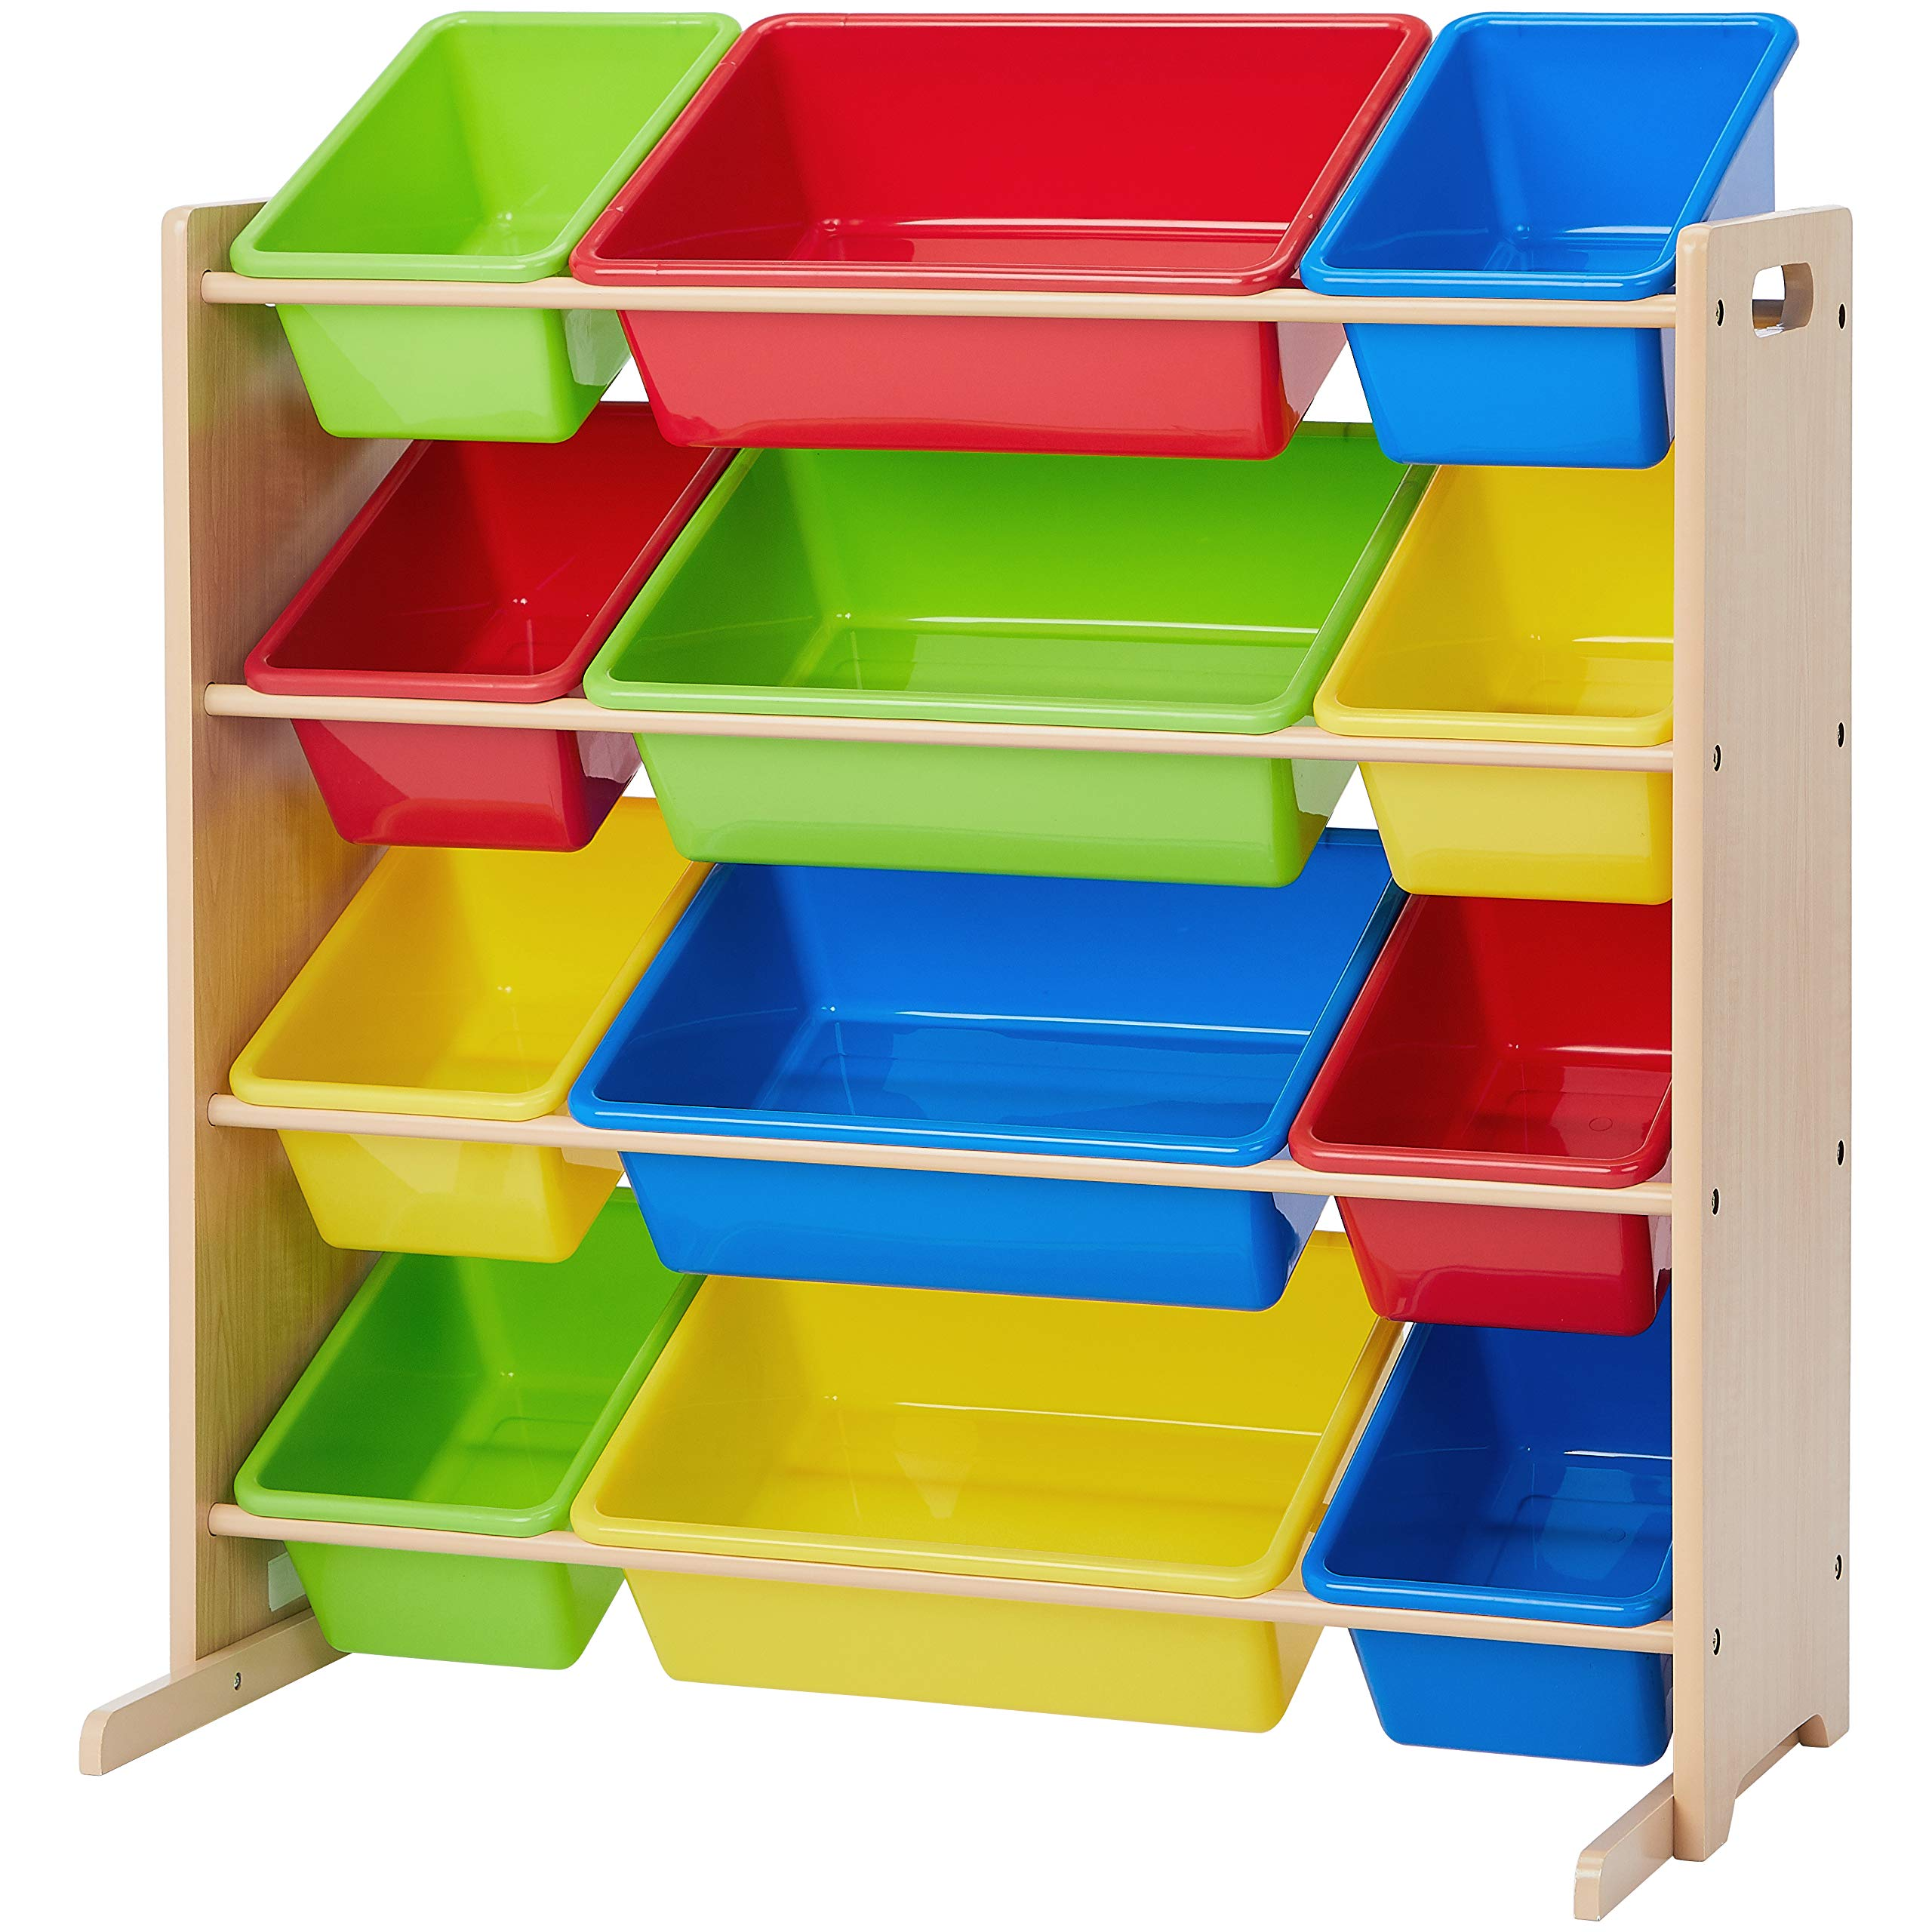 Phoenix Home Lodi Kid's Toy Storage Organizer, Natural with 12 Colorful Plastic Bins - Red, Yellow, Green, Blue